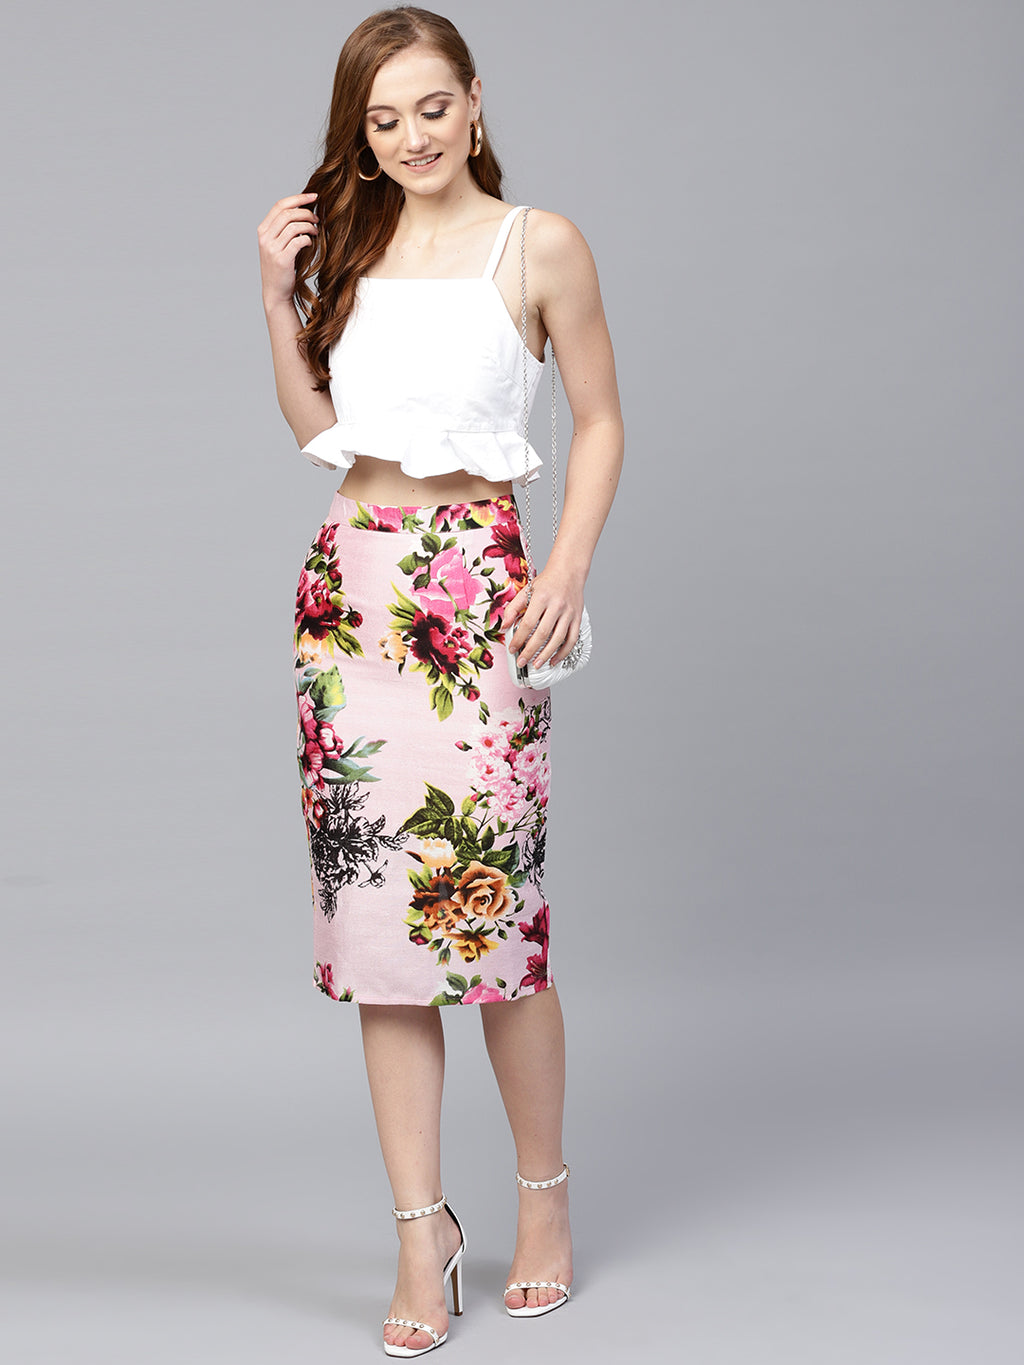 PINK & GREEN PRINTED PENCIL SKIRT